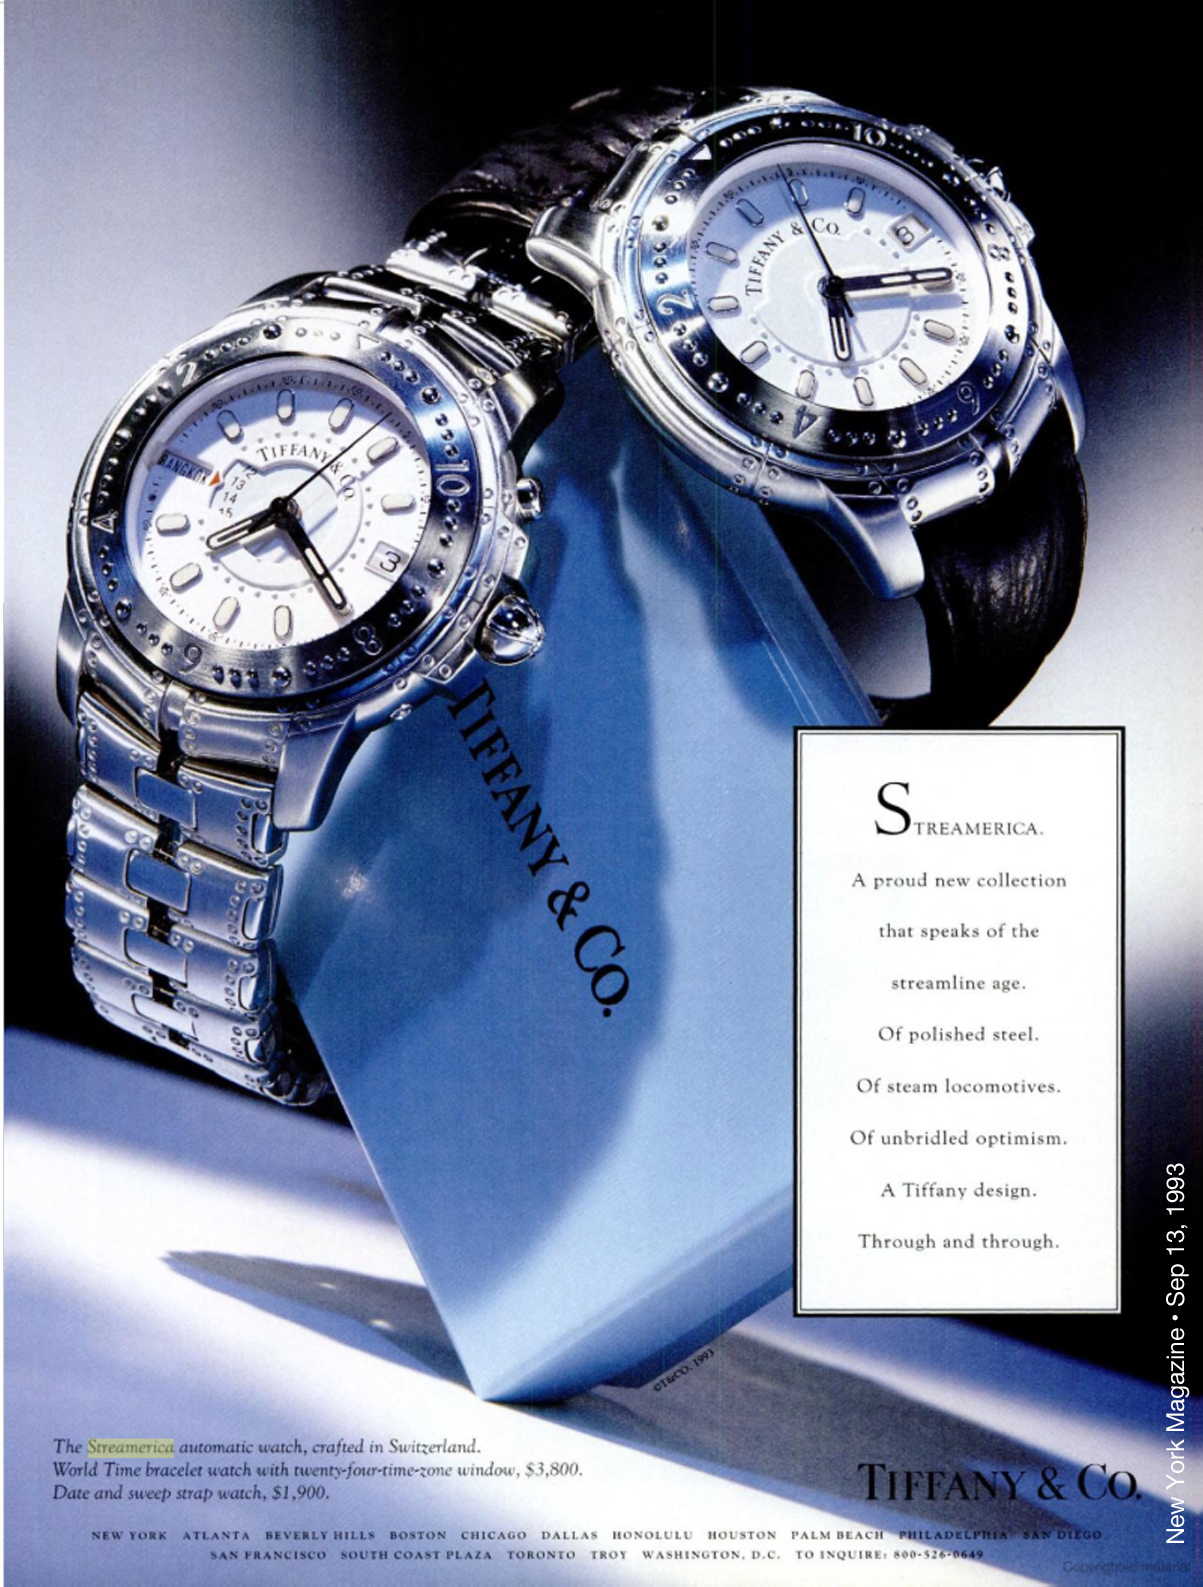 1993 advertisement from Tiffany & Co. Stainless steel World Time Automatic Watch and Automatic Chronometer with leather band. Tiffany & Co. Streamerica Stainless Steel Collection Advertisements Watch Ads New York Magazine September 13,1993 Prices Price Worth